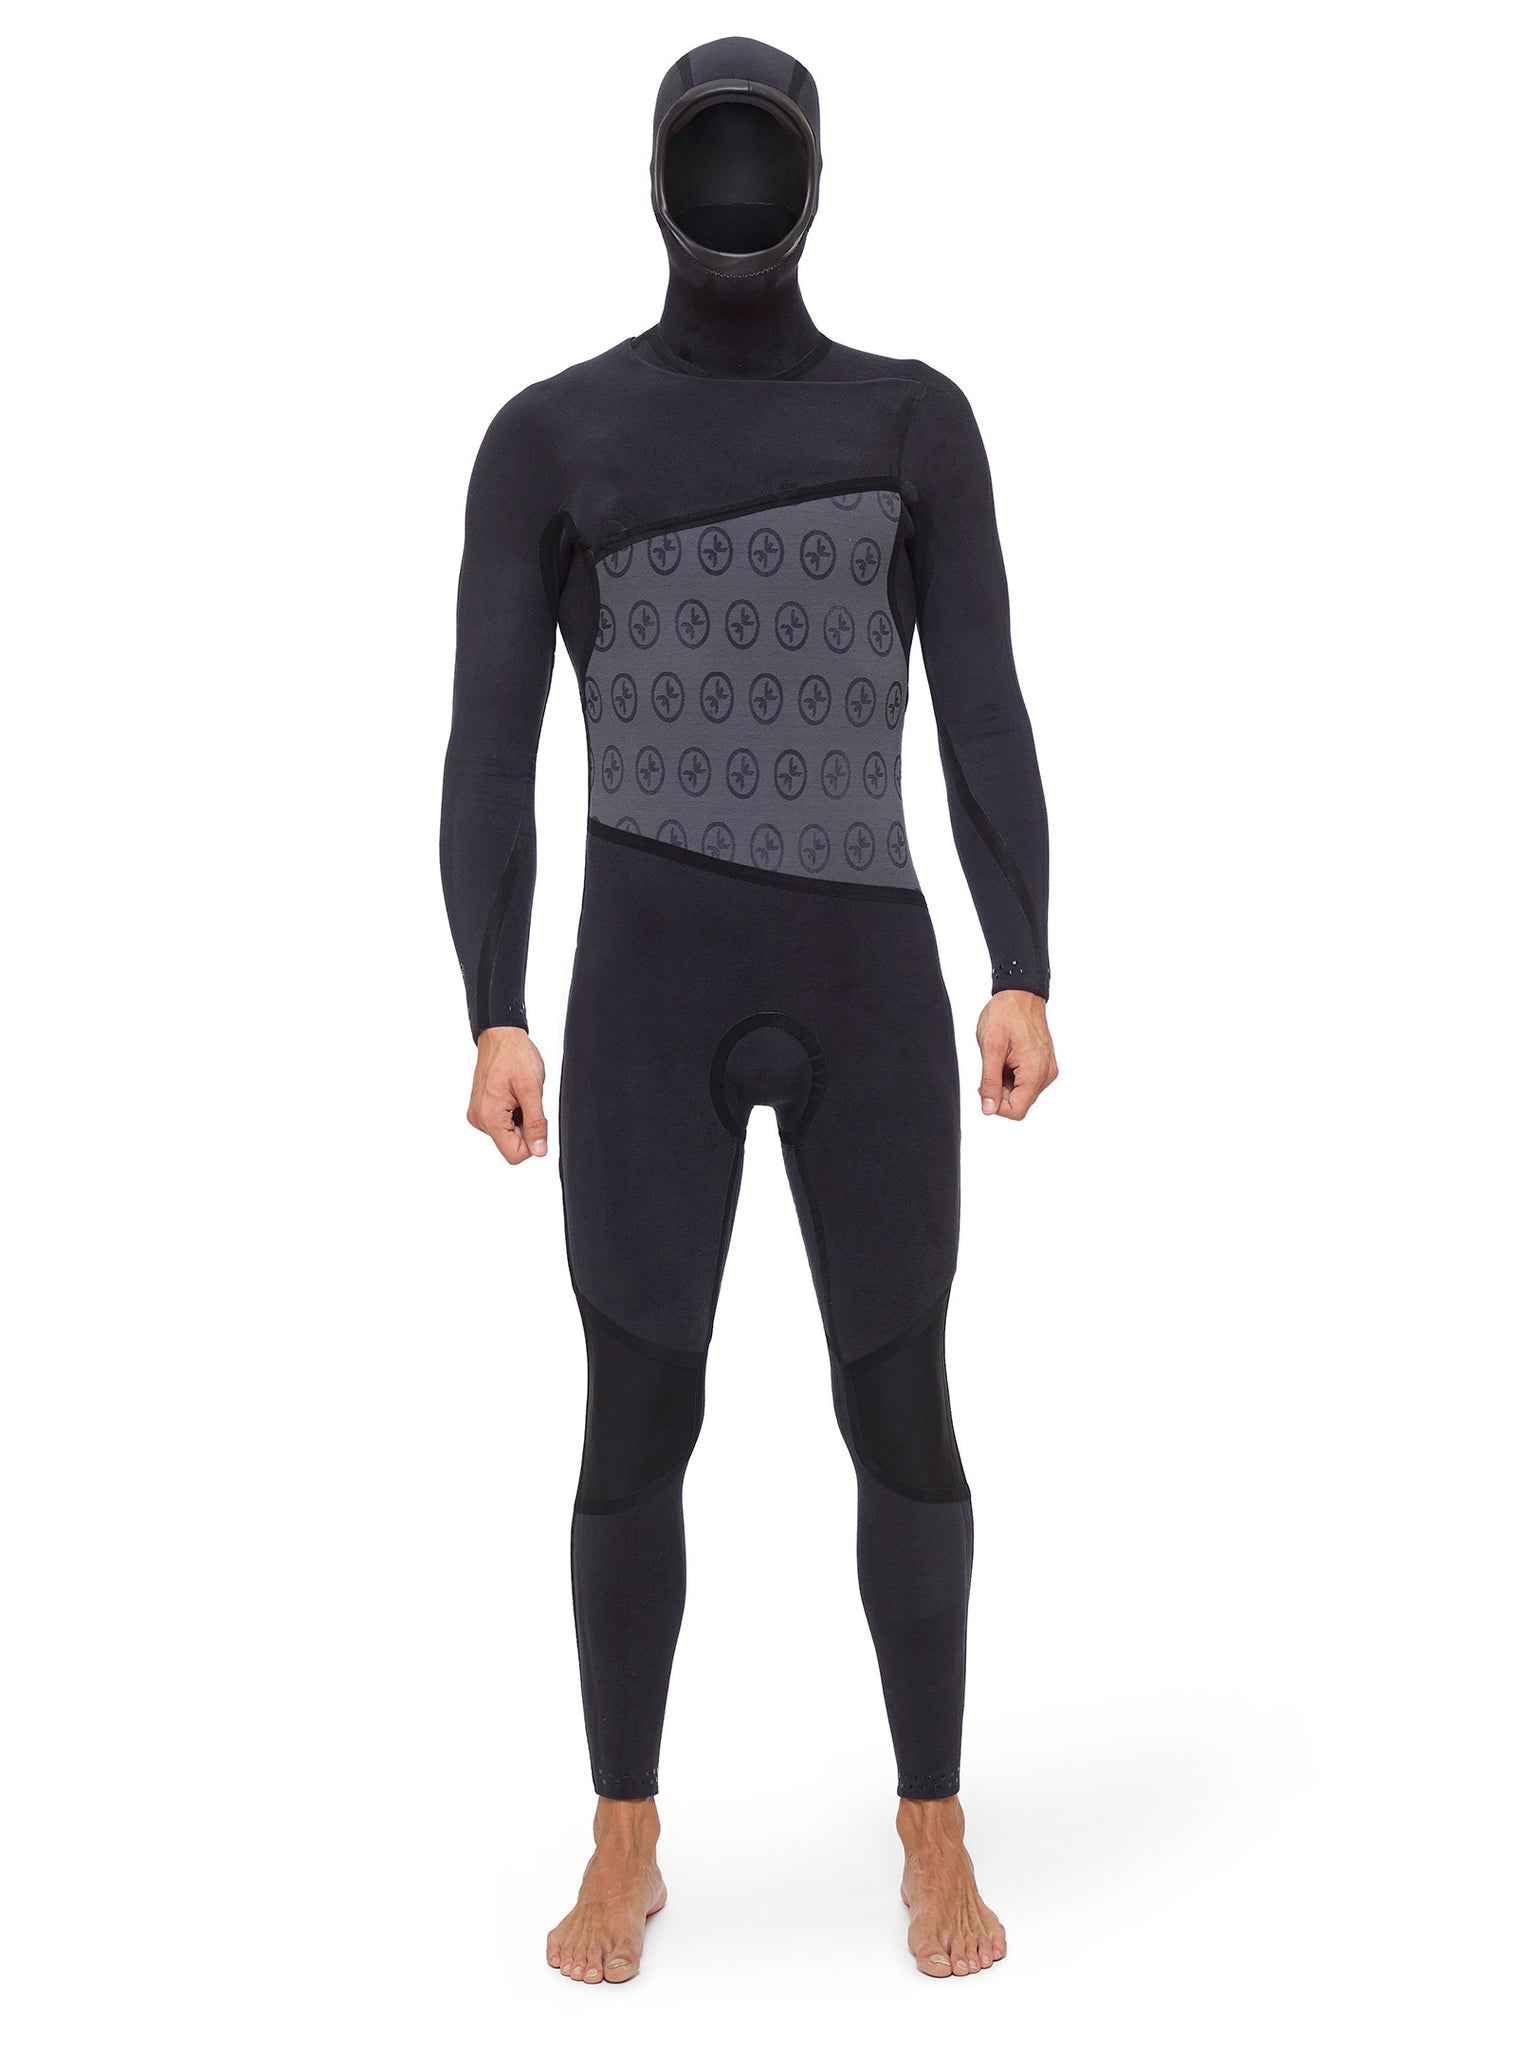 Wetsuit Man Competition 5/4 Zipperless Black